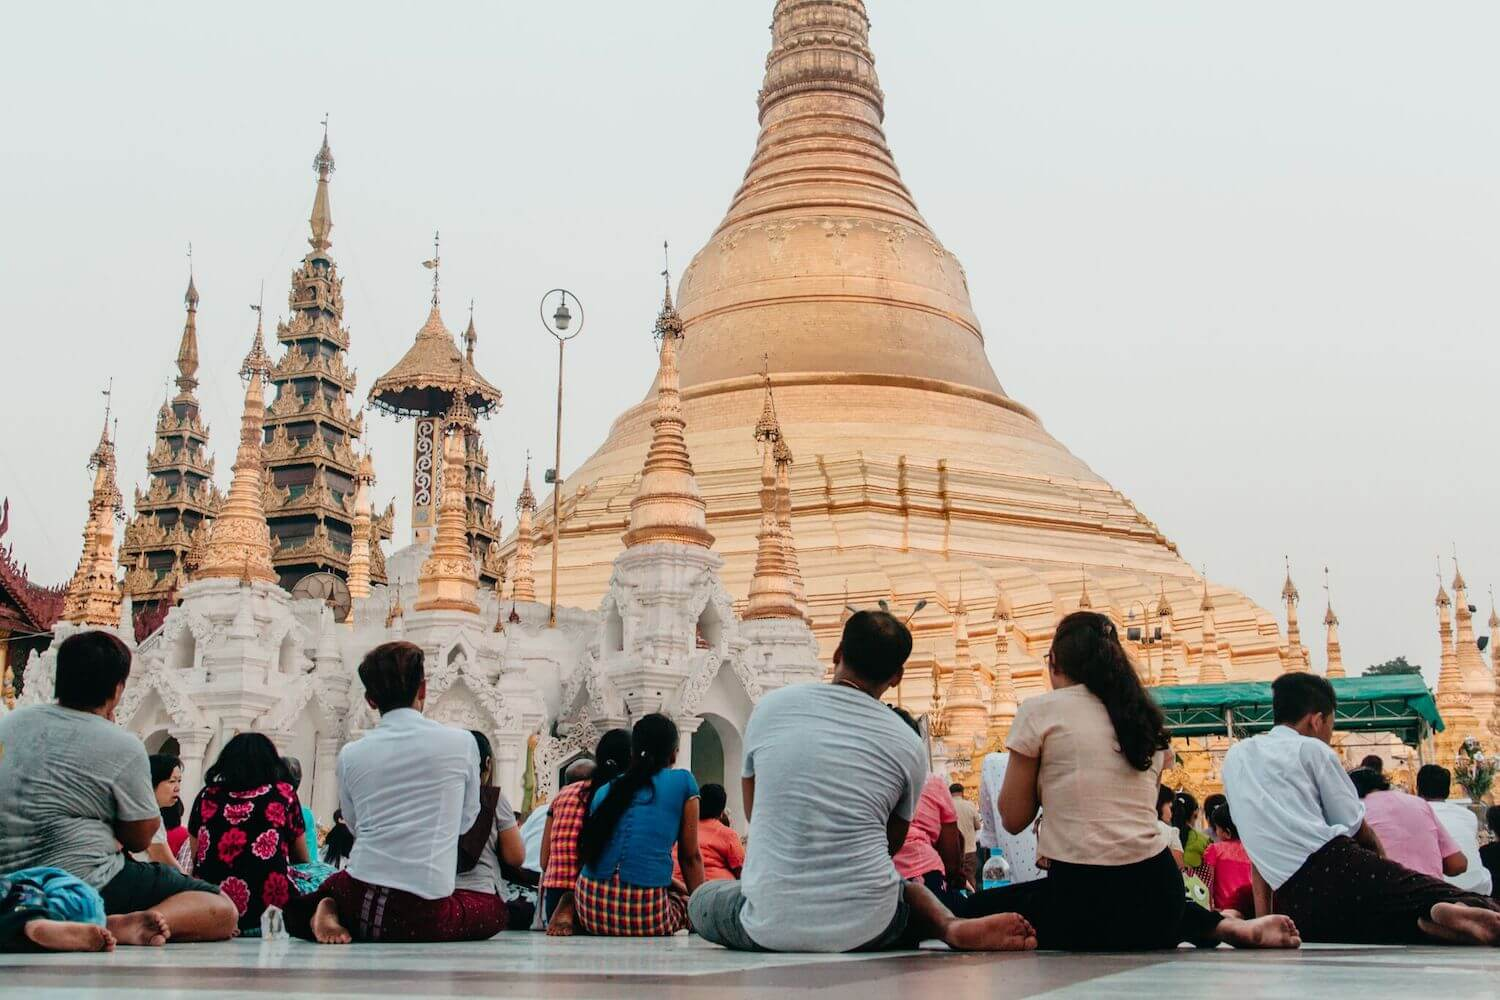 Best Myanmar Itinerary: Photo of Shwedagon Pagoda in Yangon Myanmar, the Golden Temple, with people sitting beneath the tallest spire at dusk. photo taken by Ryan Brown of Lost Boy Memoirs with Canon 650D Rebel T4i, edited in Lightroom.